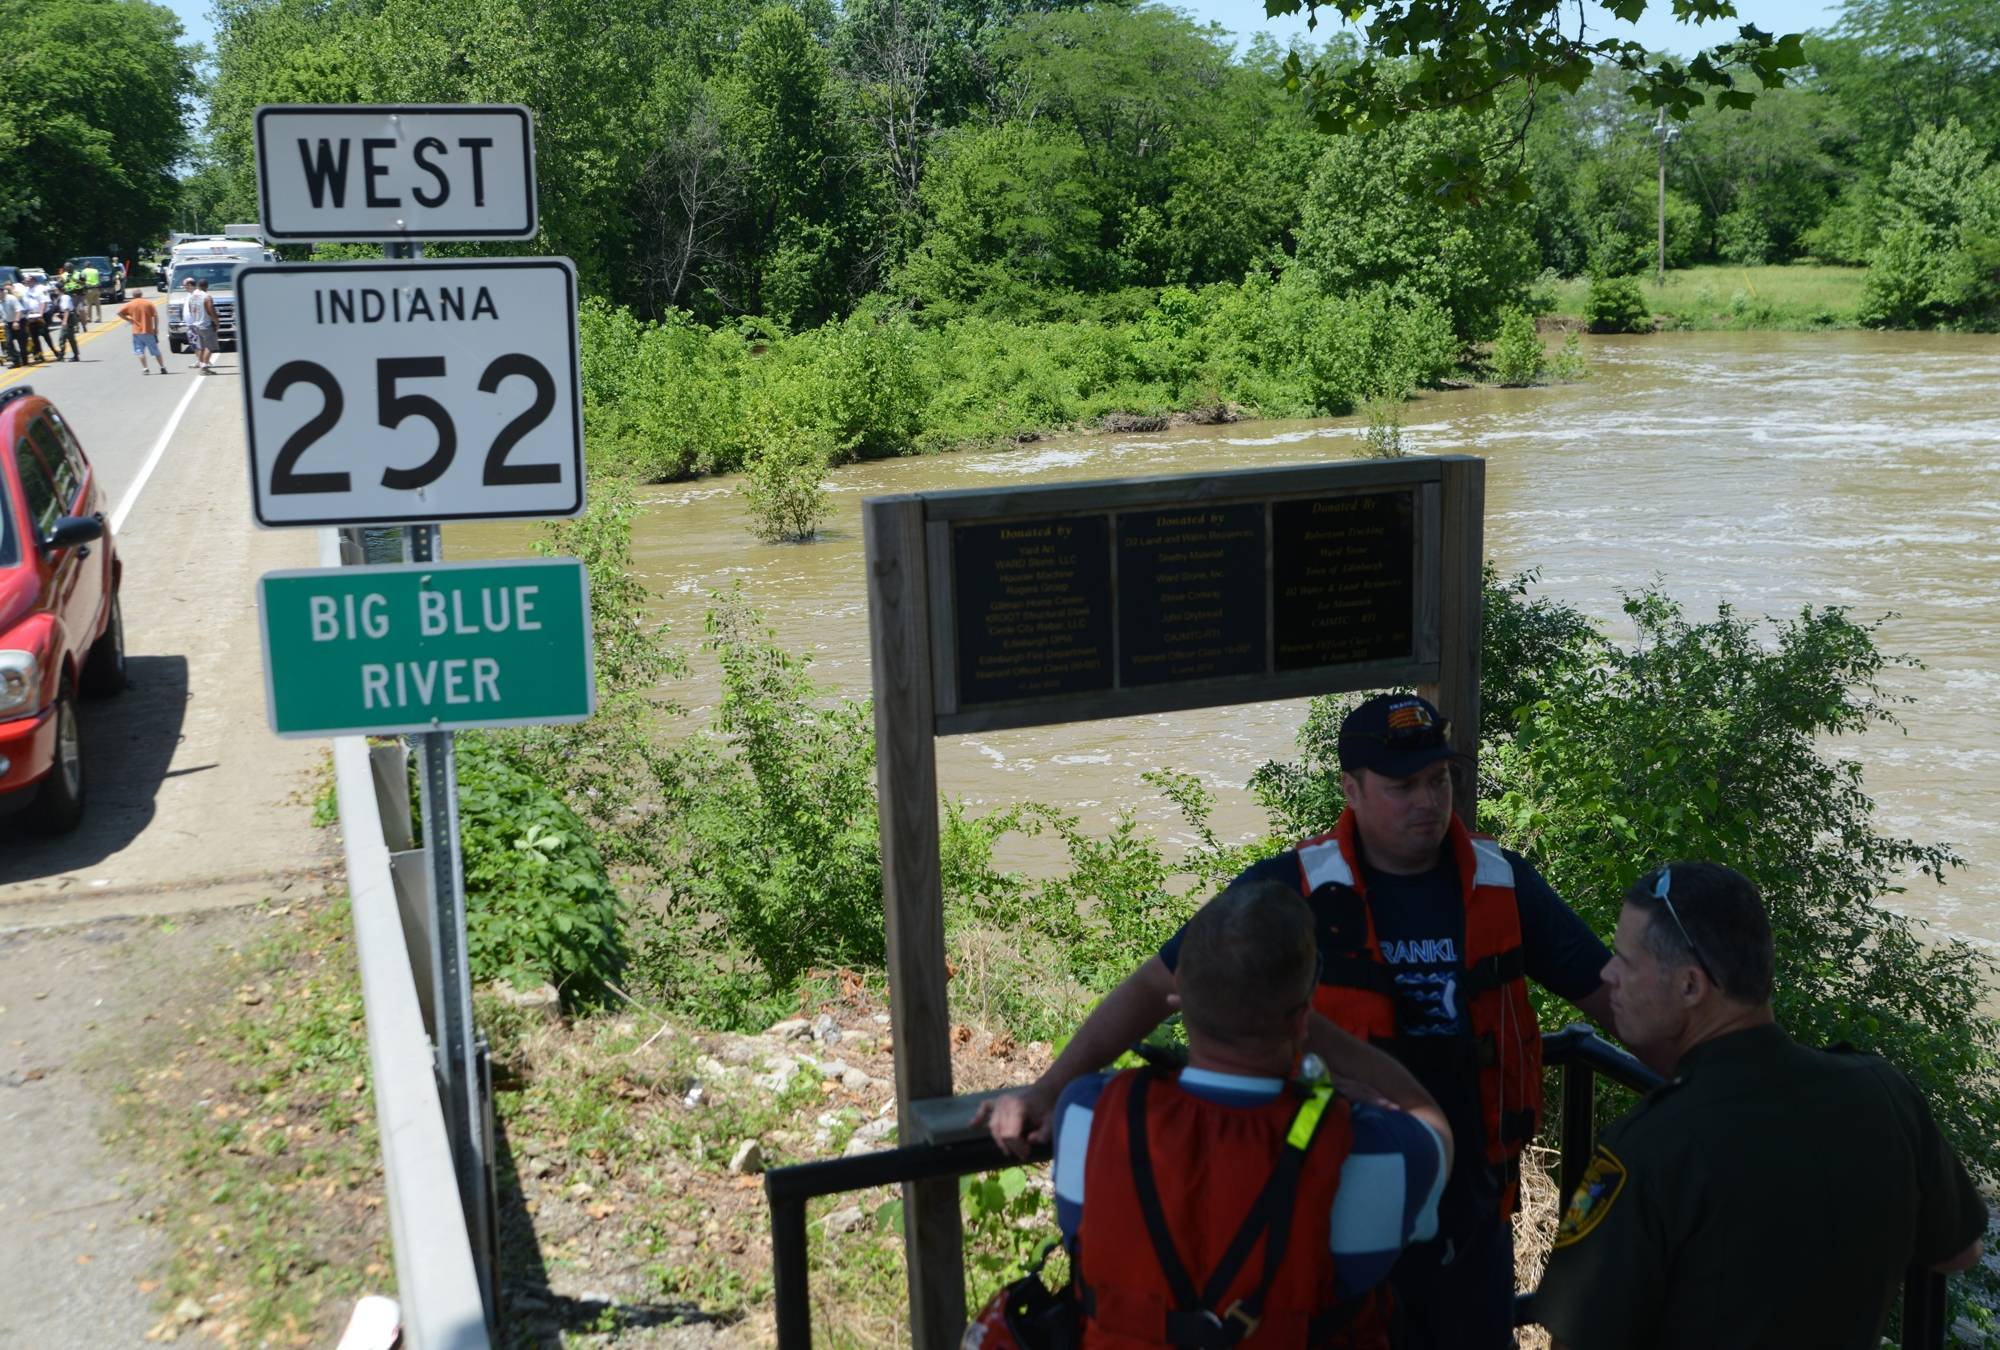 Rescue workers confer Friday on the road above the Big Blue River in Edinburgh, Ind. A teenager was missing and two others were in critical condition after a swimming outing turned tragic.